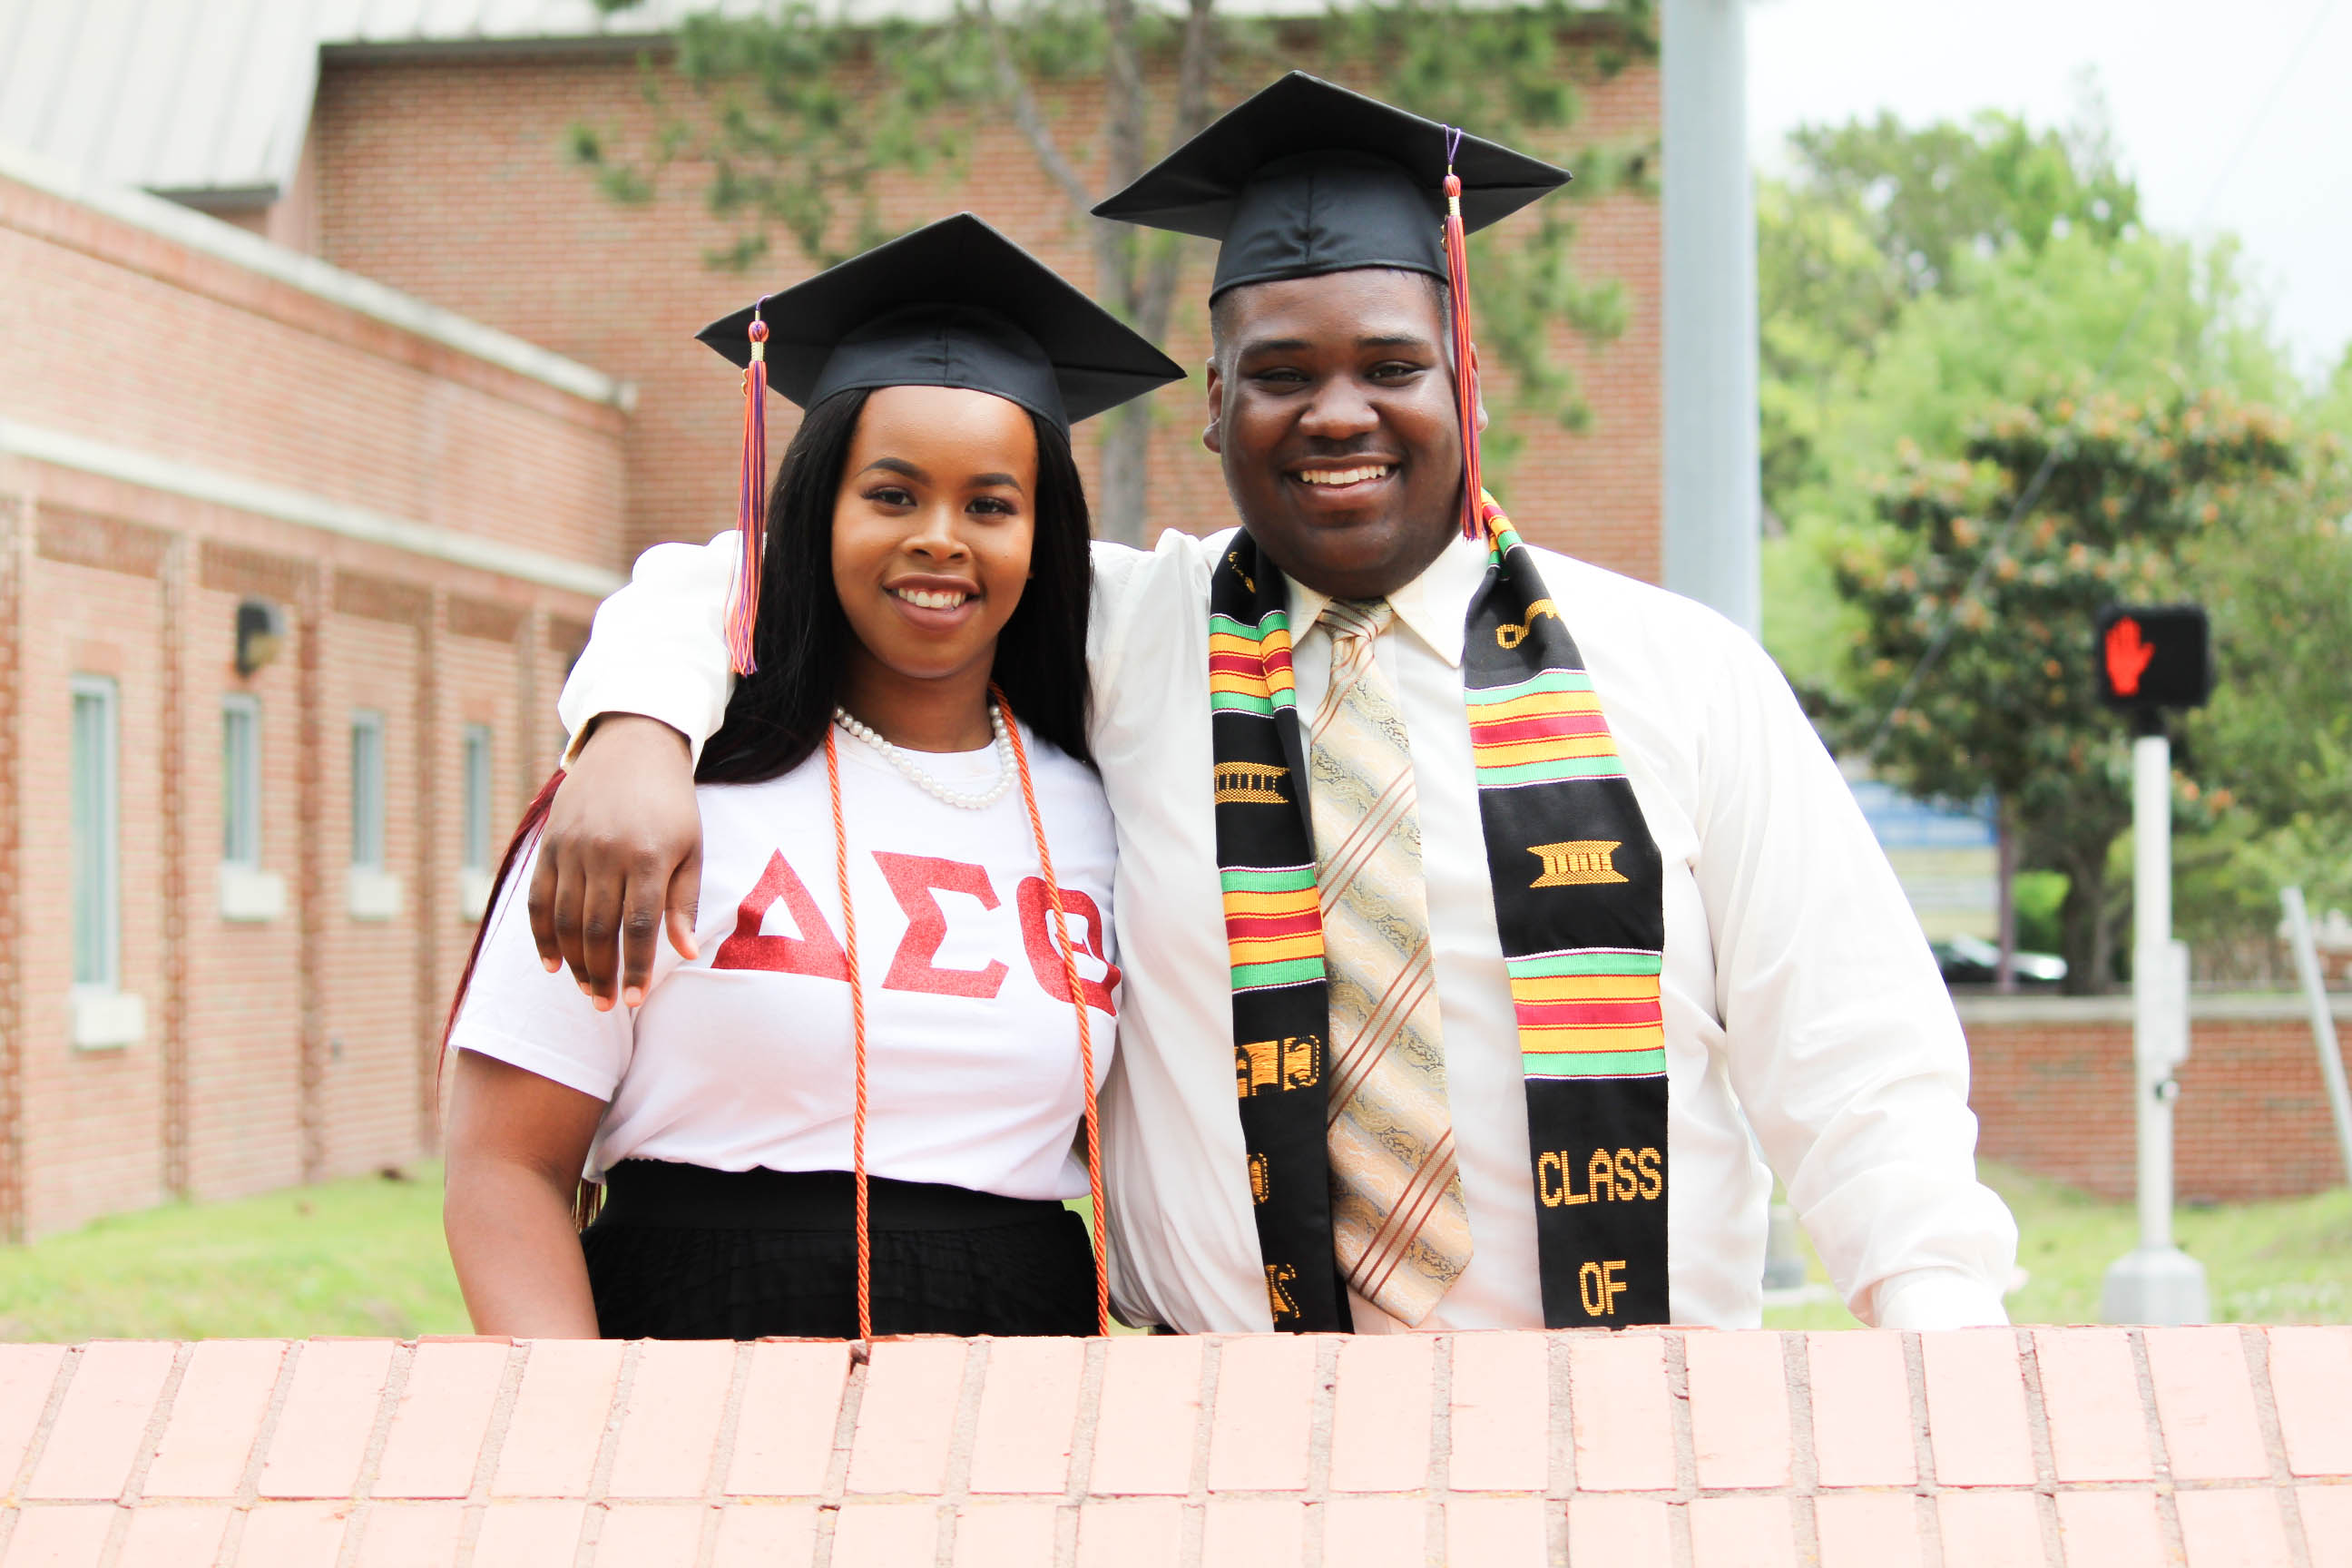 Female and Male student (left and right) smiling wearing graduation attire